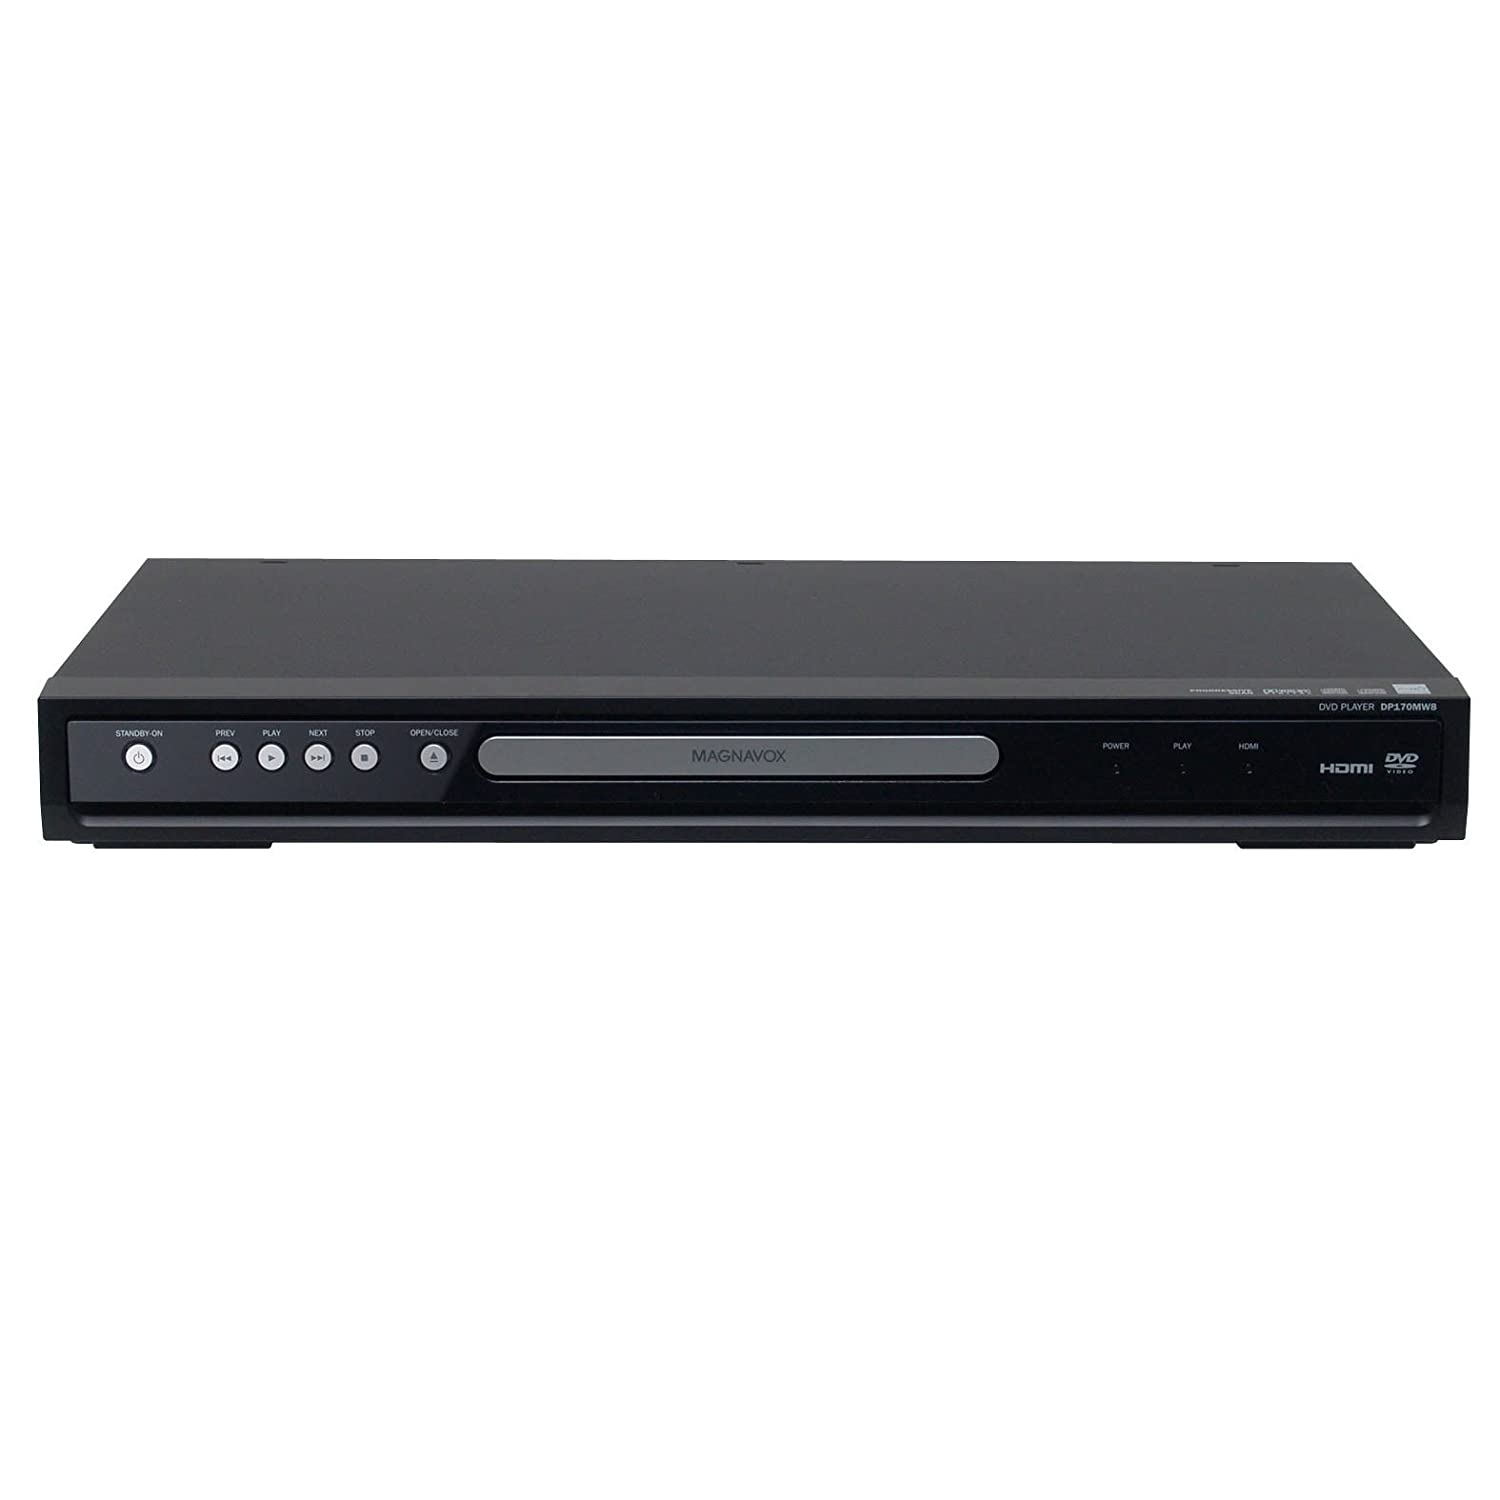 Outstanding Hooking Up Dvd Player To Hdtv Gallery - Electrical ...